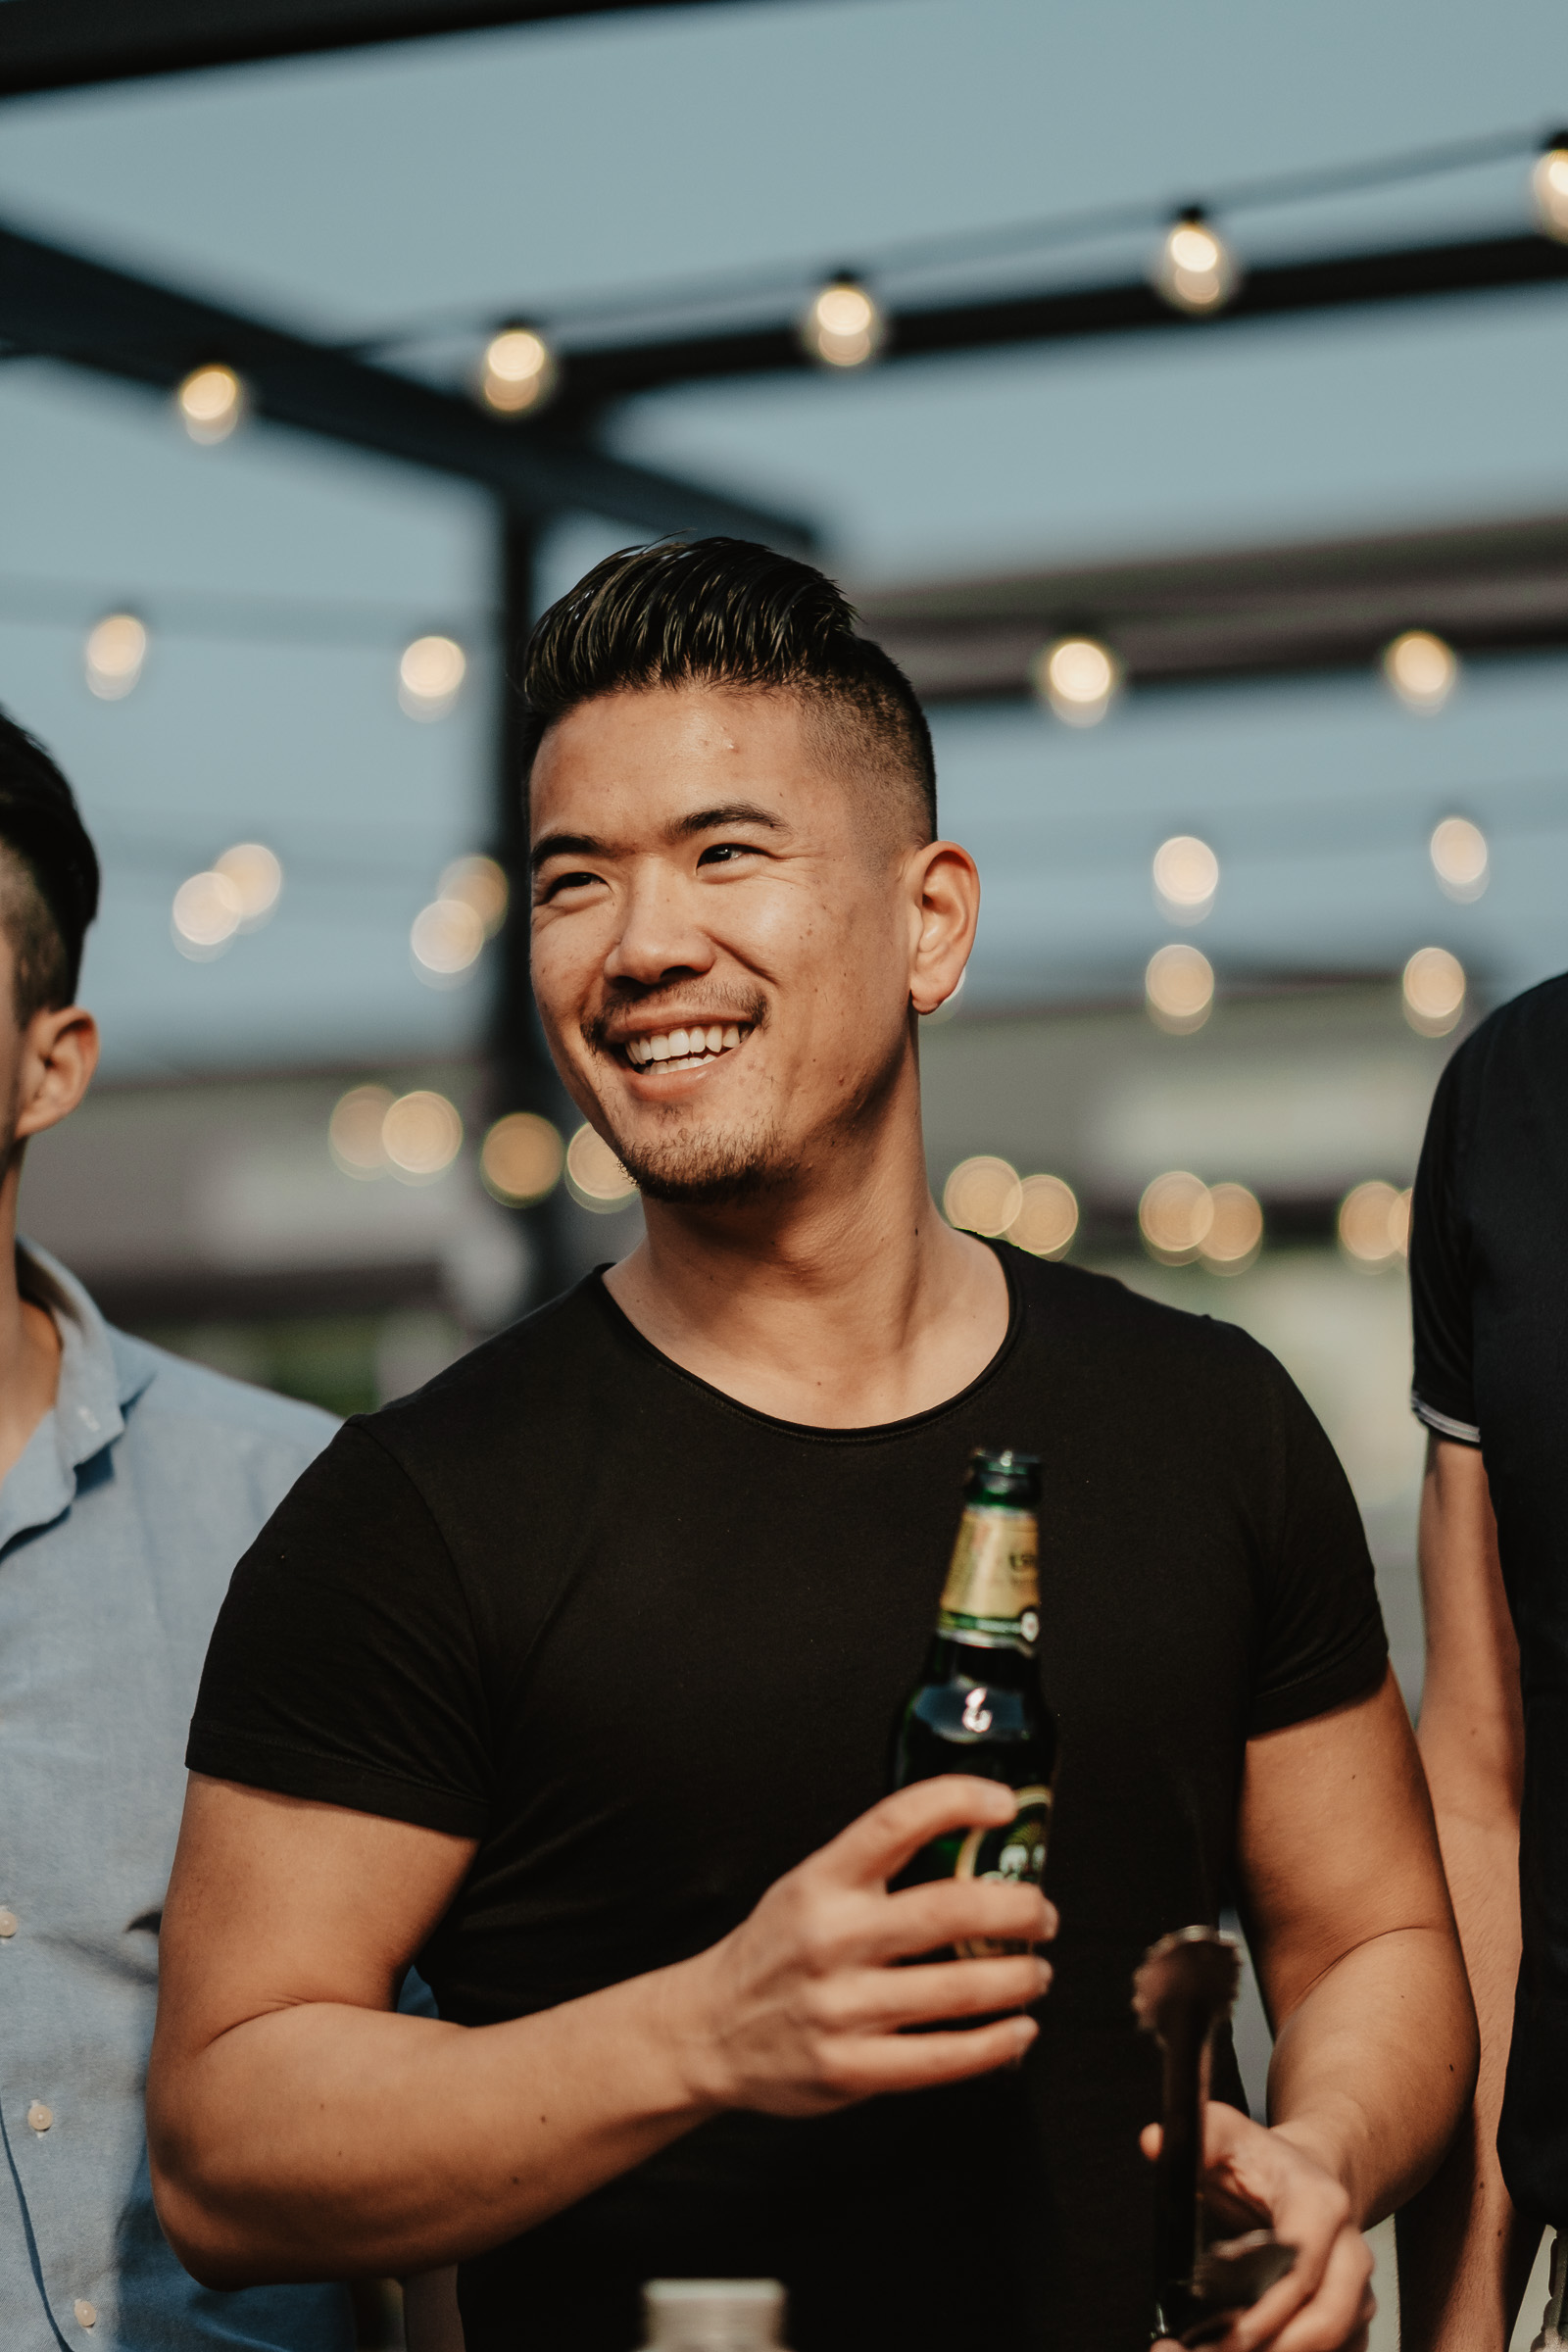 Change Beer Ad - Nelson Yong- Seattle Lifestlye Photography - Crowd Cow-6306.jpg